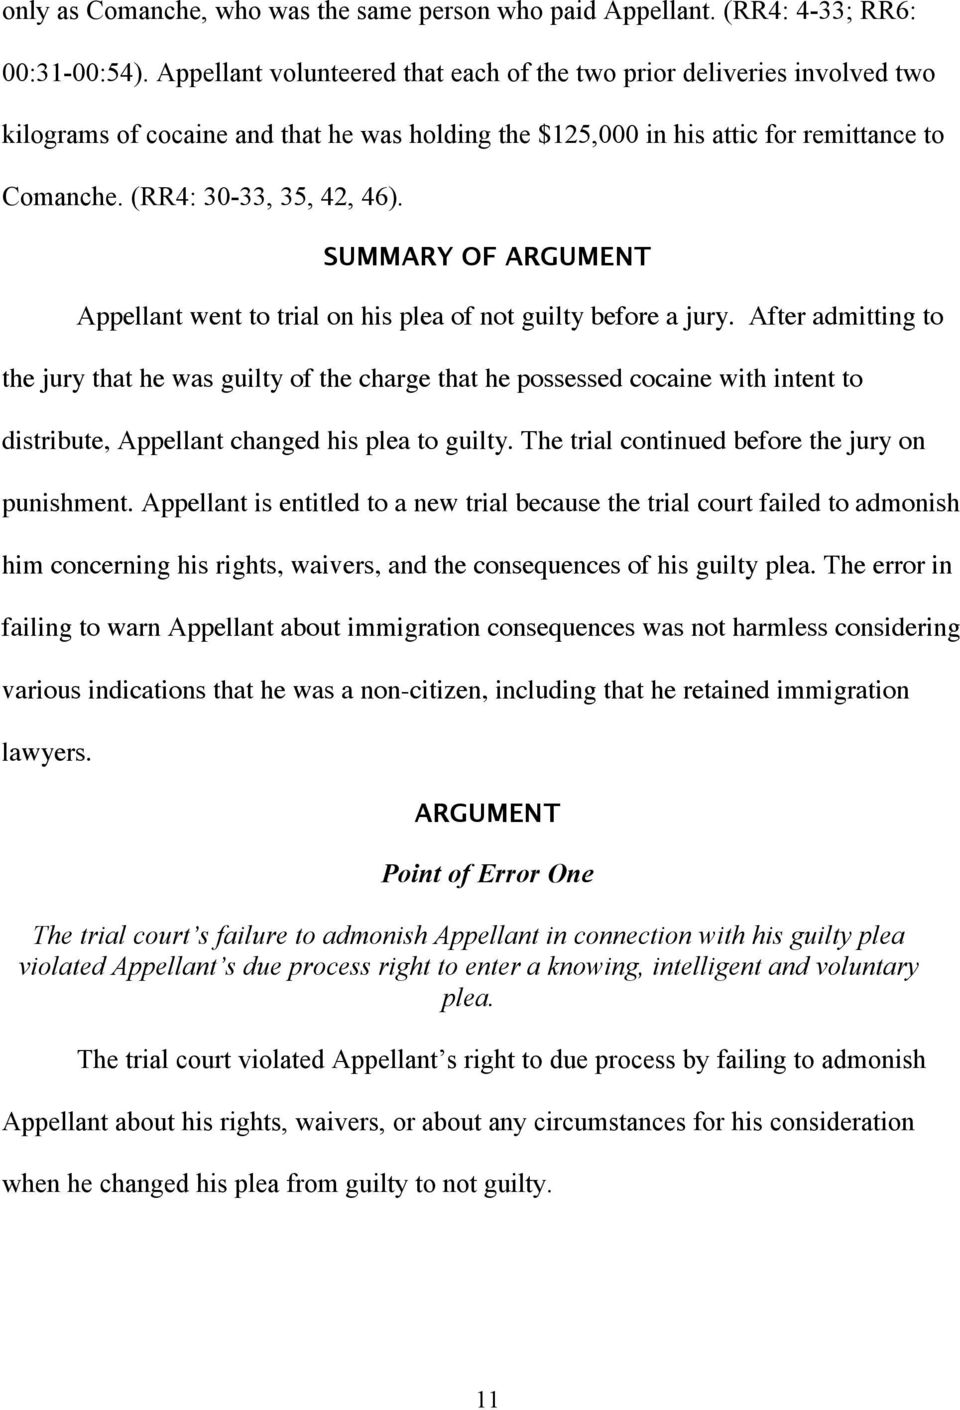 SUMMARY OF ARGUMENT Appellant went to trial on his plea of not guilty before a jury.